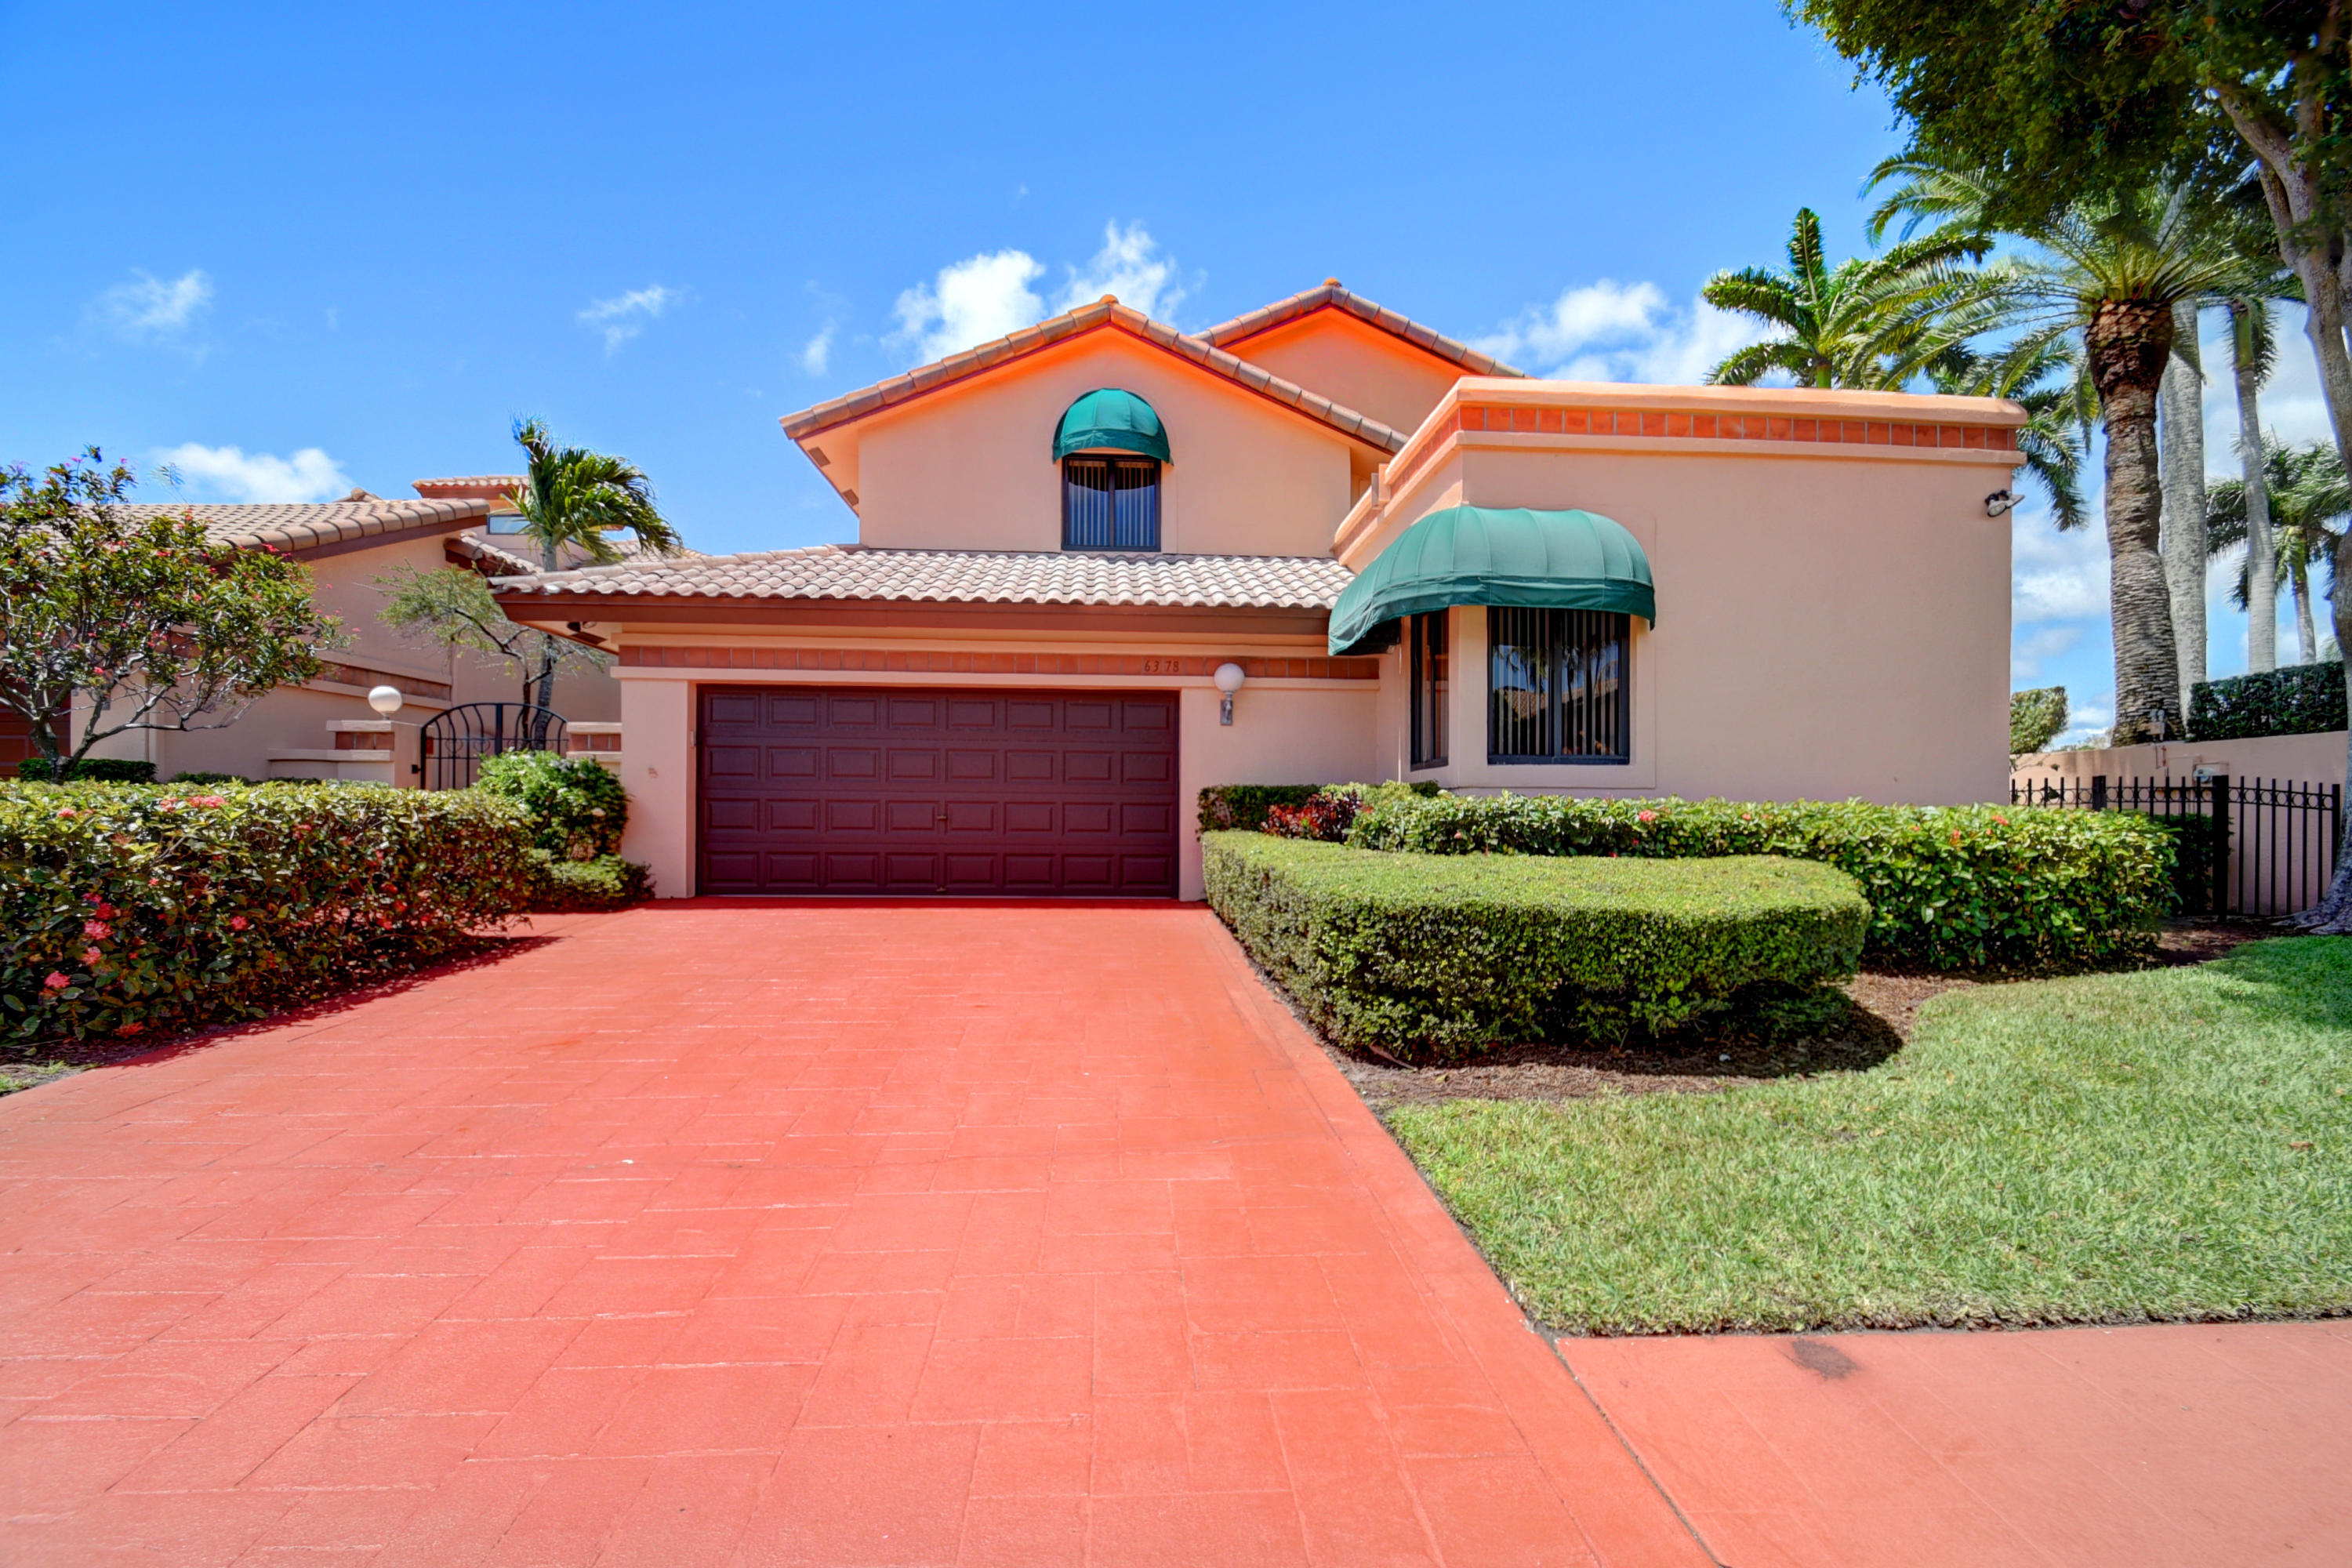 Photo of 6378 Via Rosa, Boca Raton, FL 33433